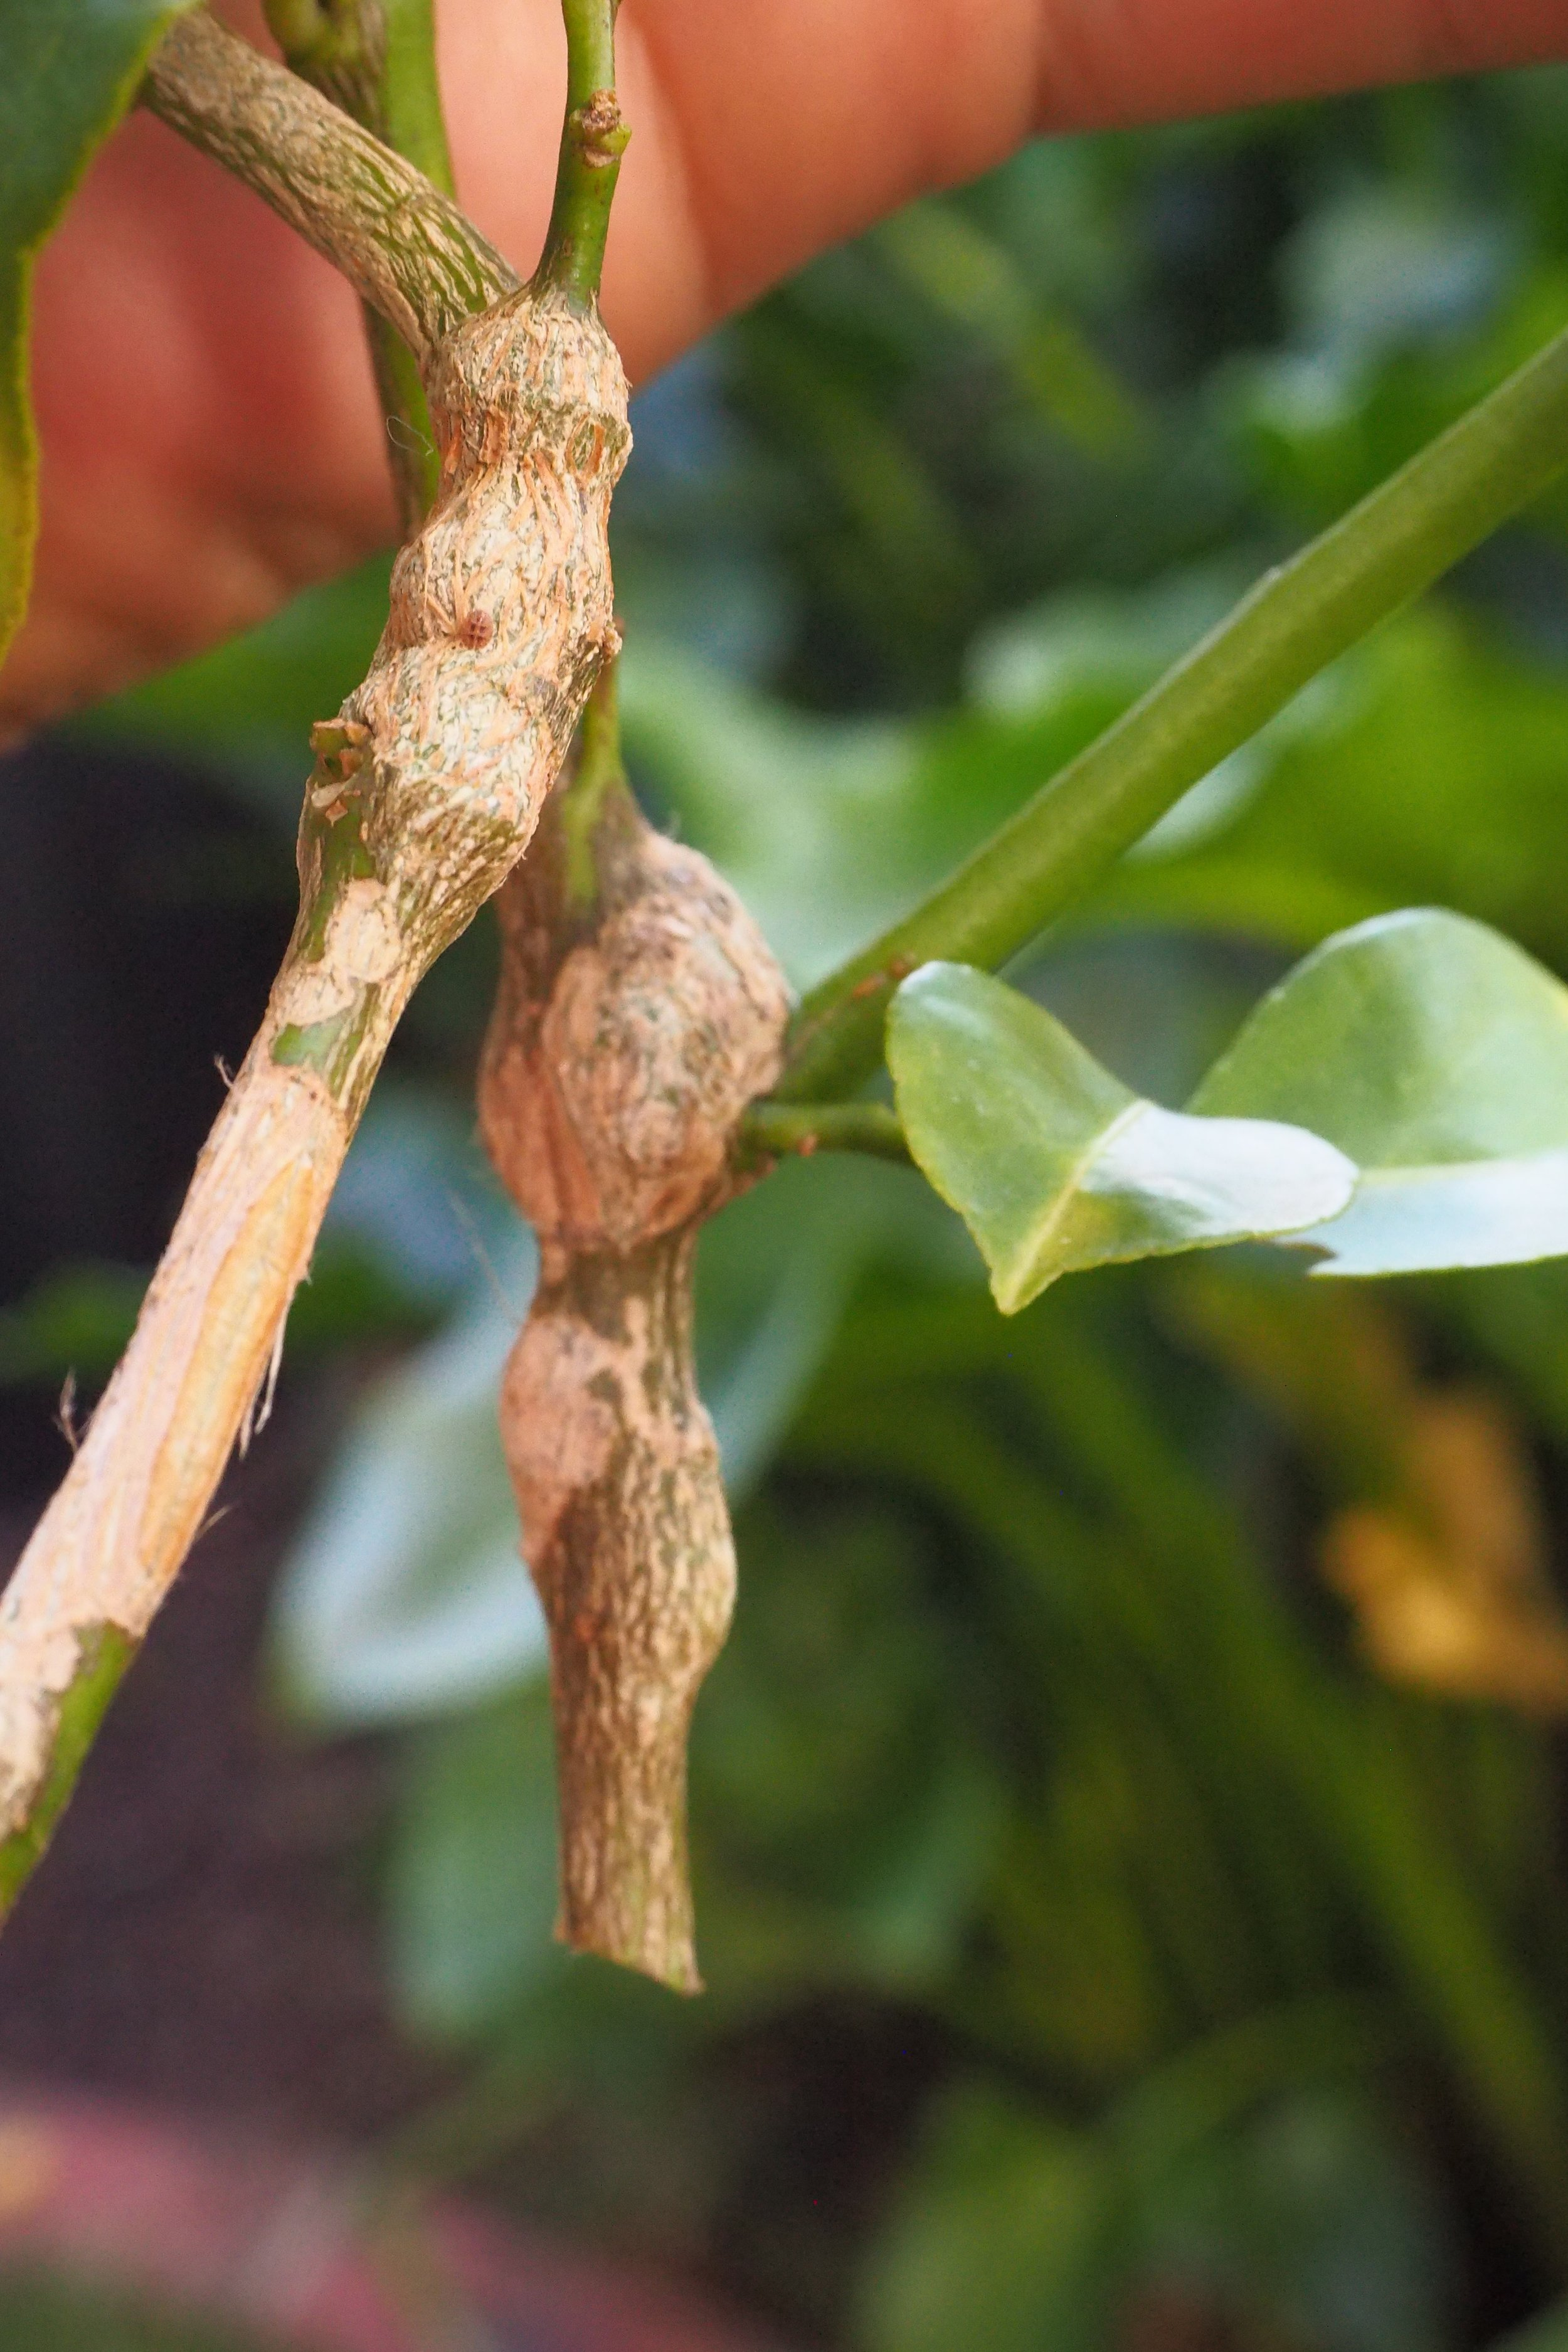 That would be Gall Wasp!